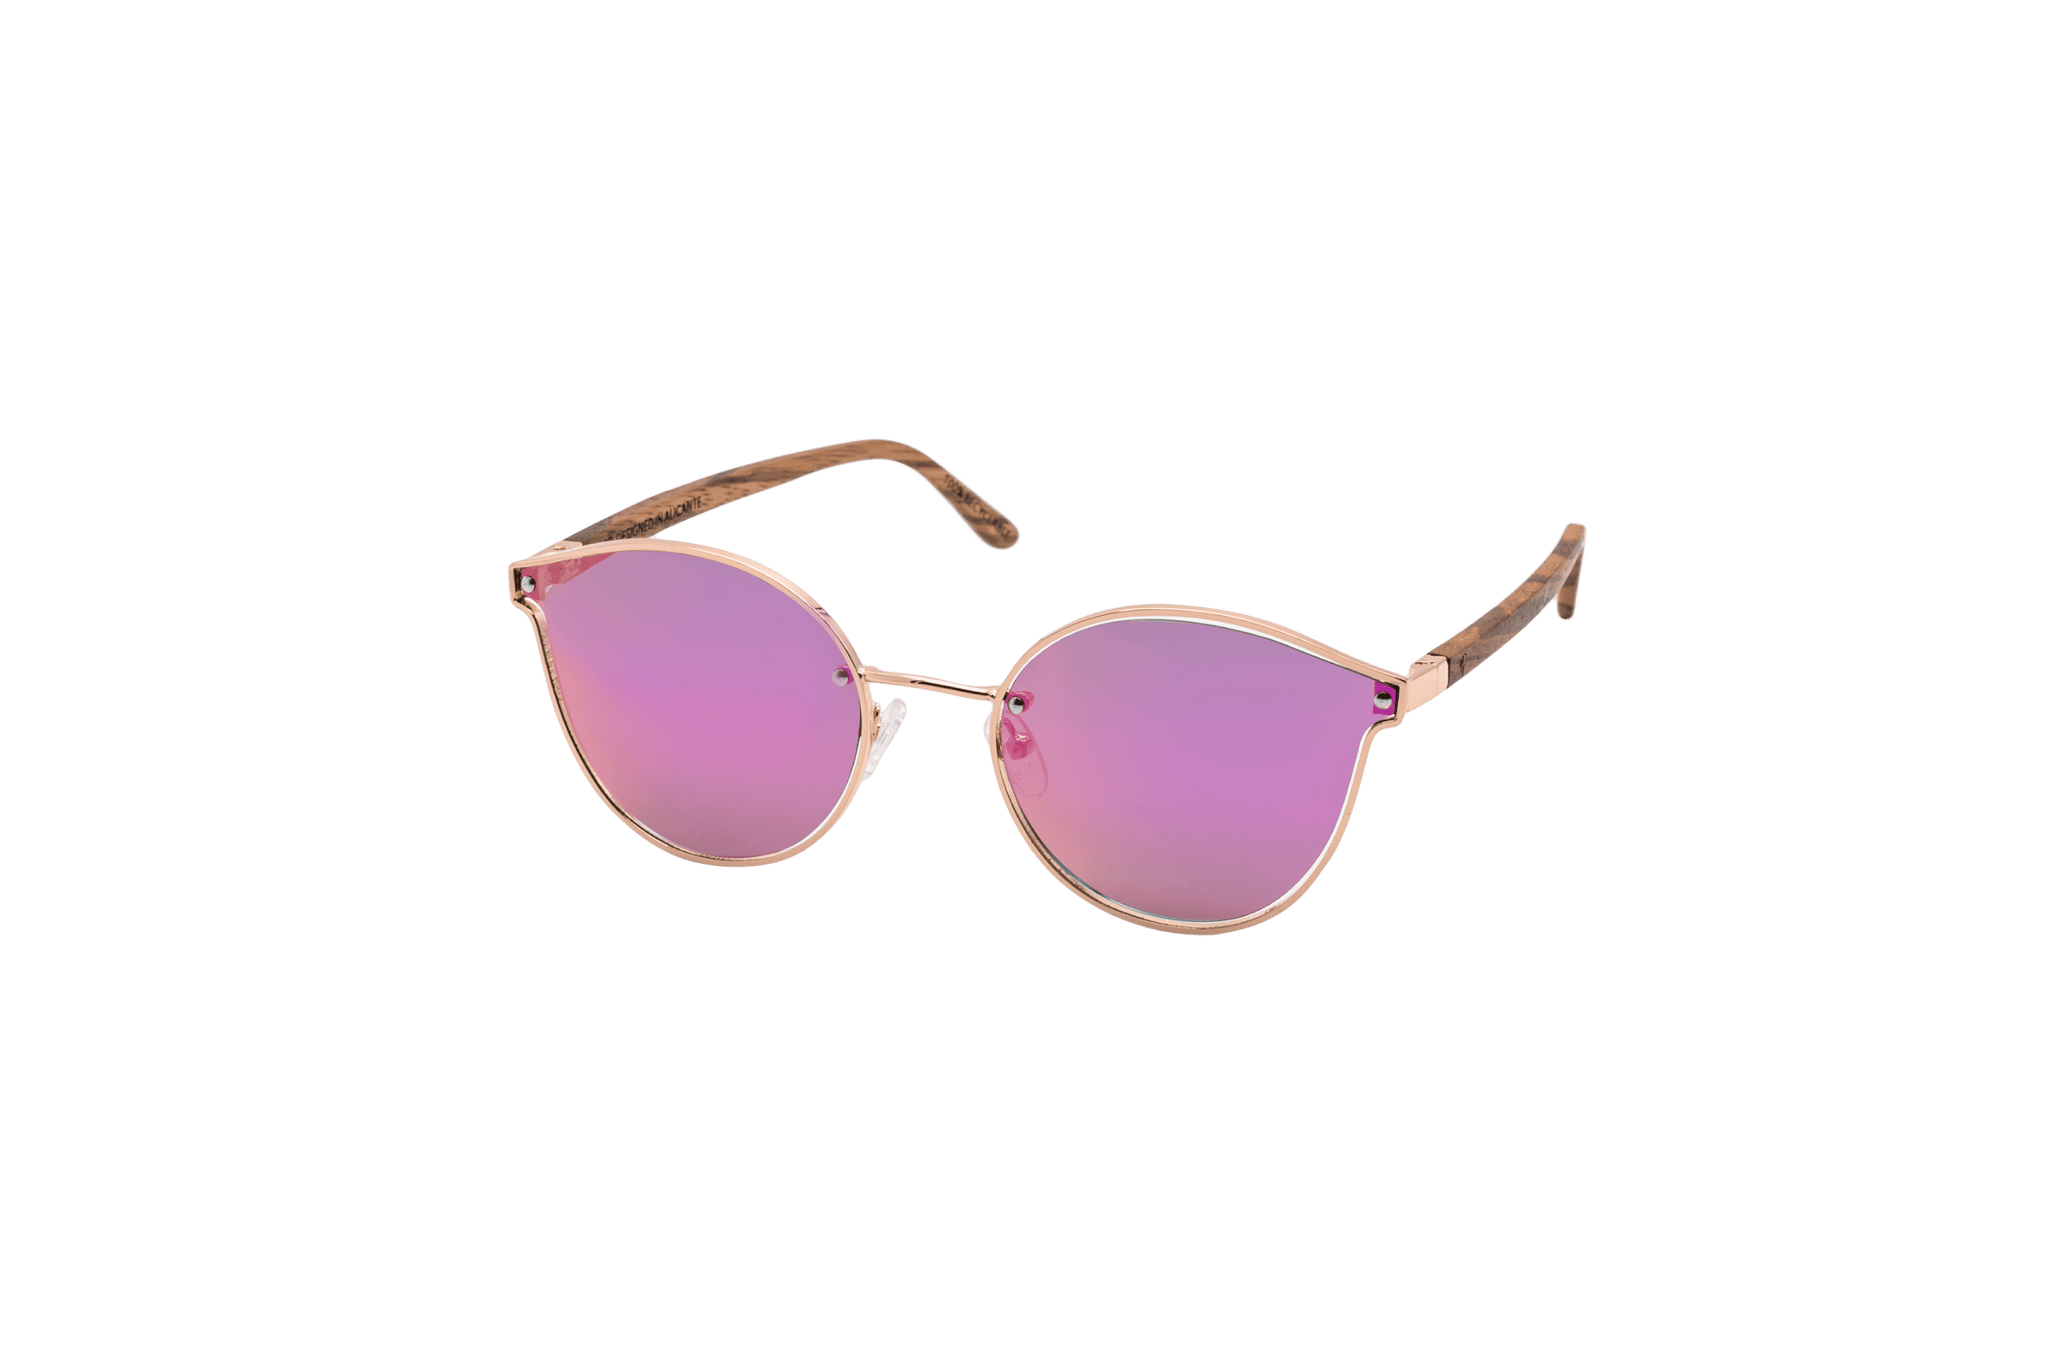 Pulse SUNGLASSES FLAMINGO Buy Best Colorful Glasses with Polarized lenses | FLAMINGO